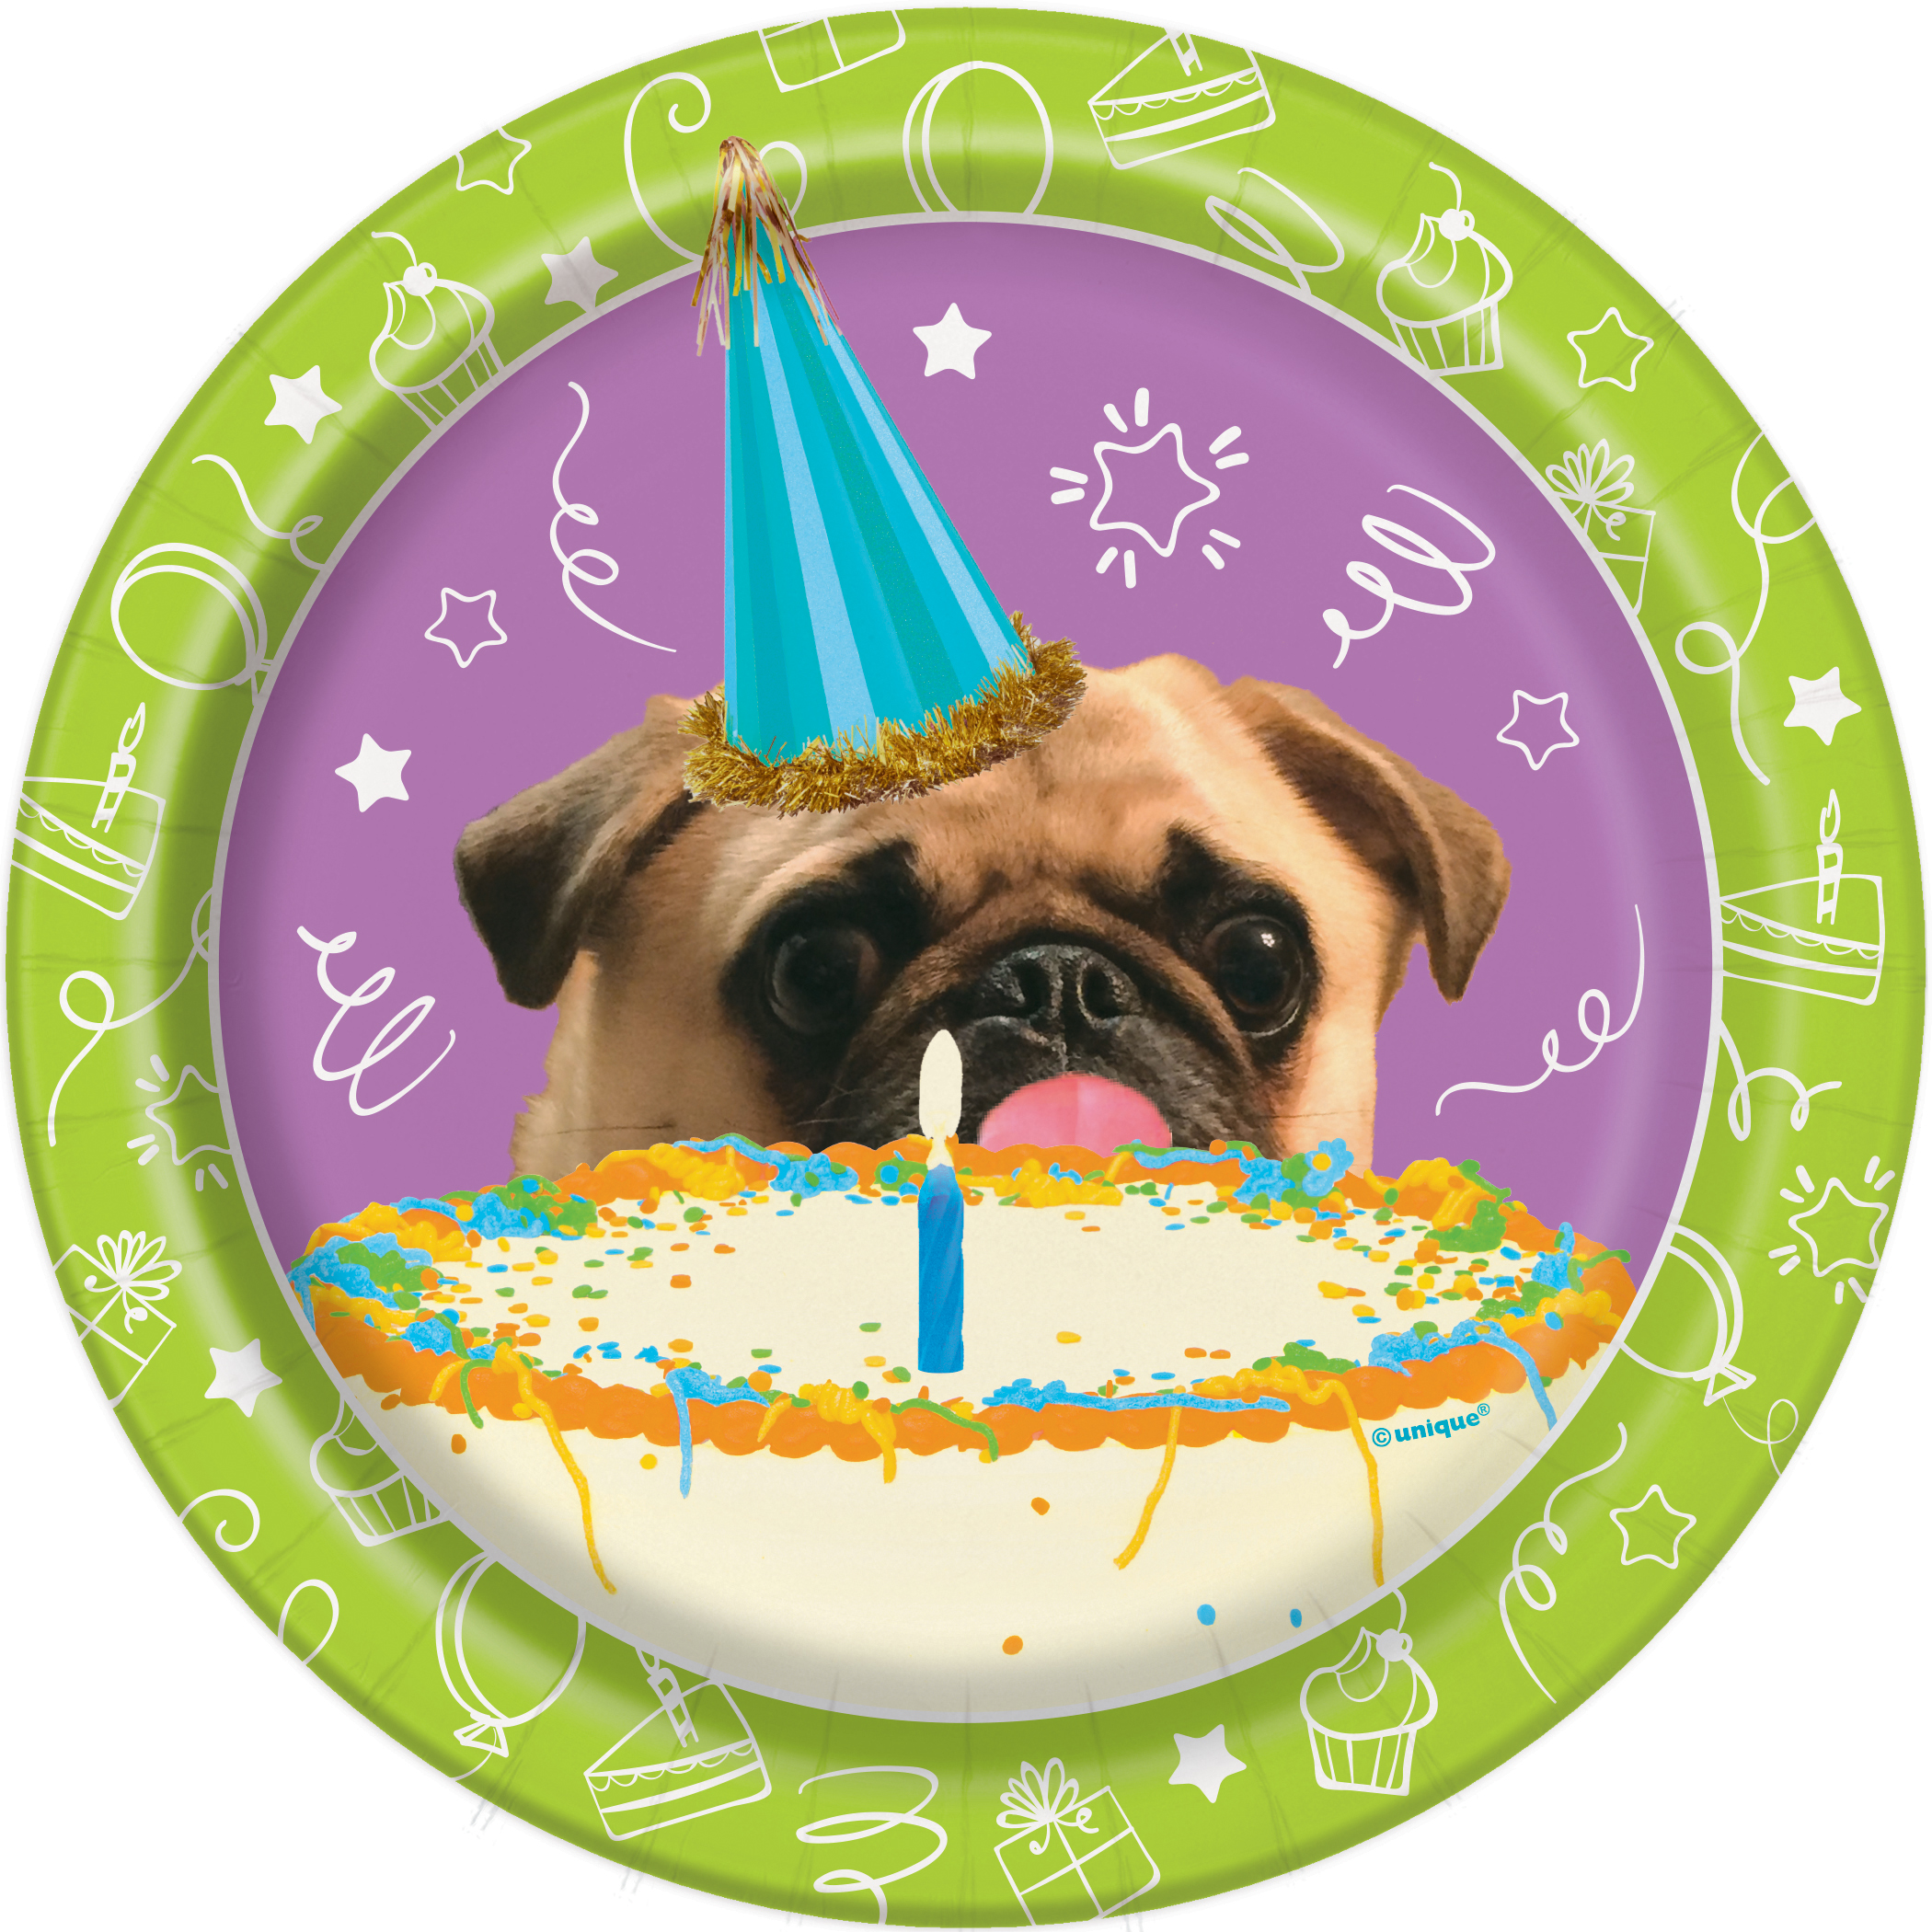 8 Pug Puppy Dog Party Paper Plates Birthday Lover Cake Buffet Size